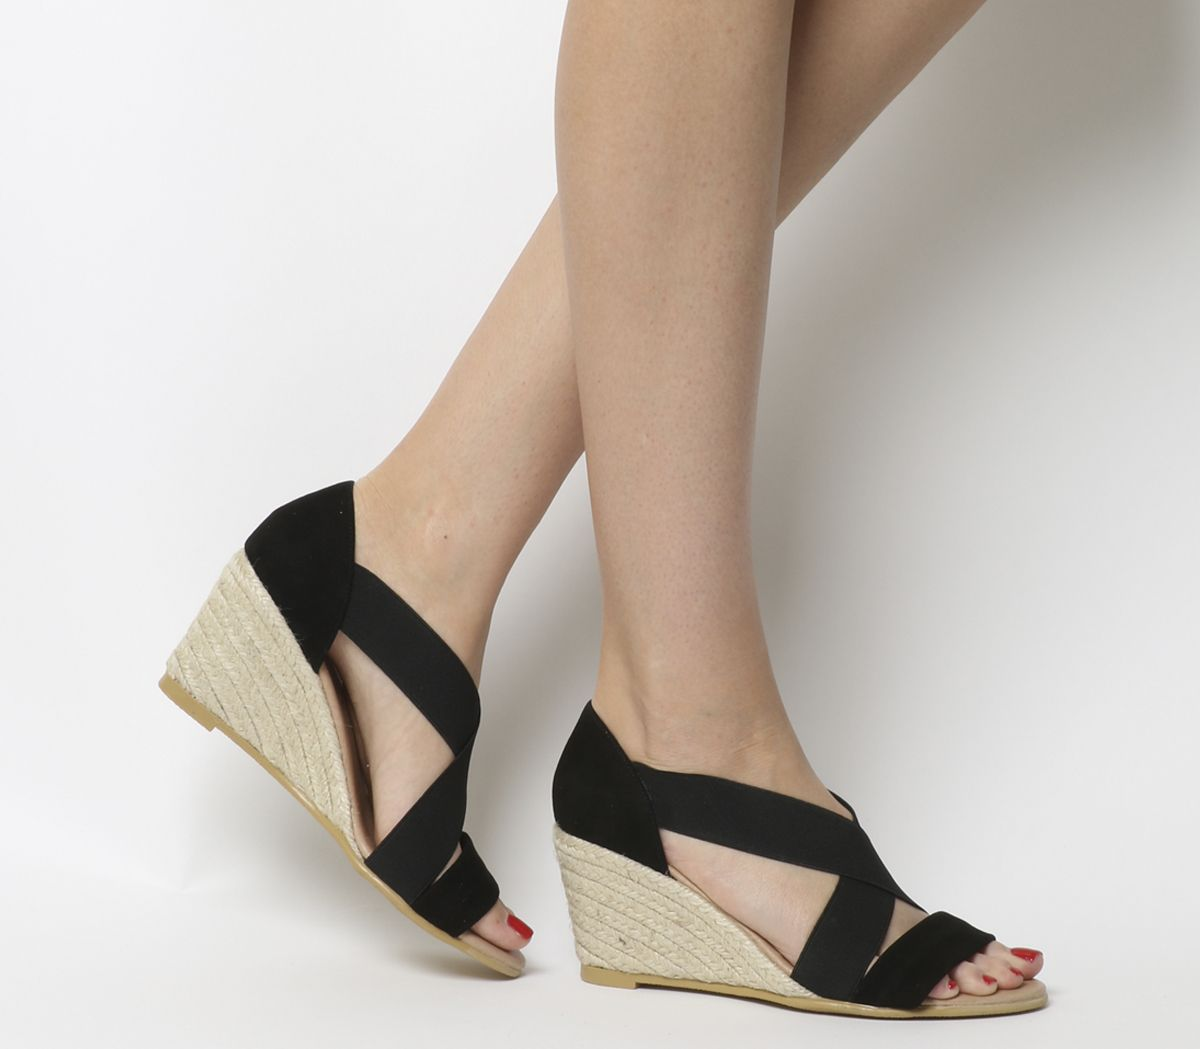 1a3f65580 Office Maiden Cross Strap Wedges Black With Black Elastic - Mid Heels